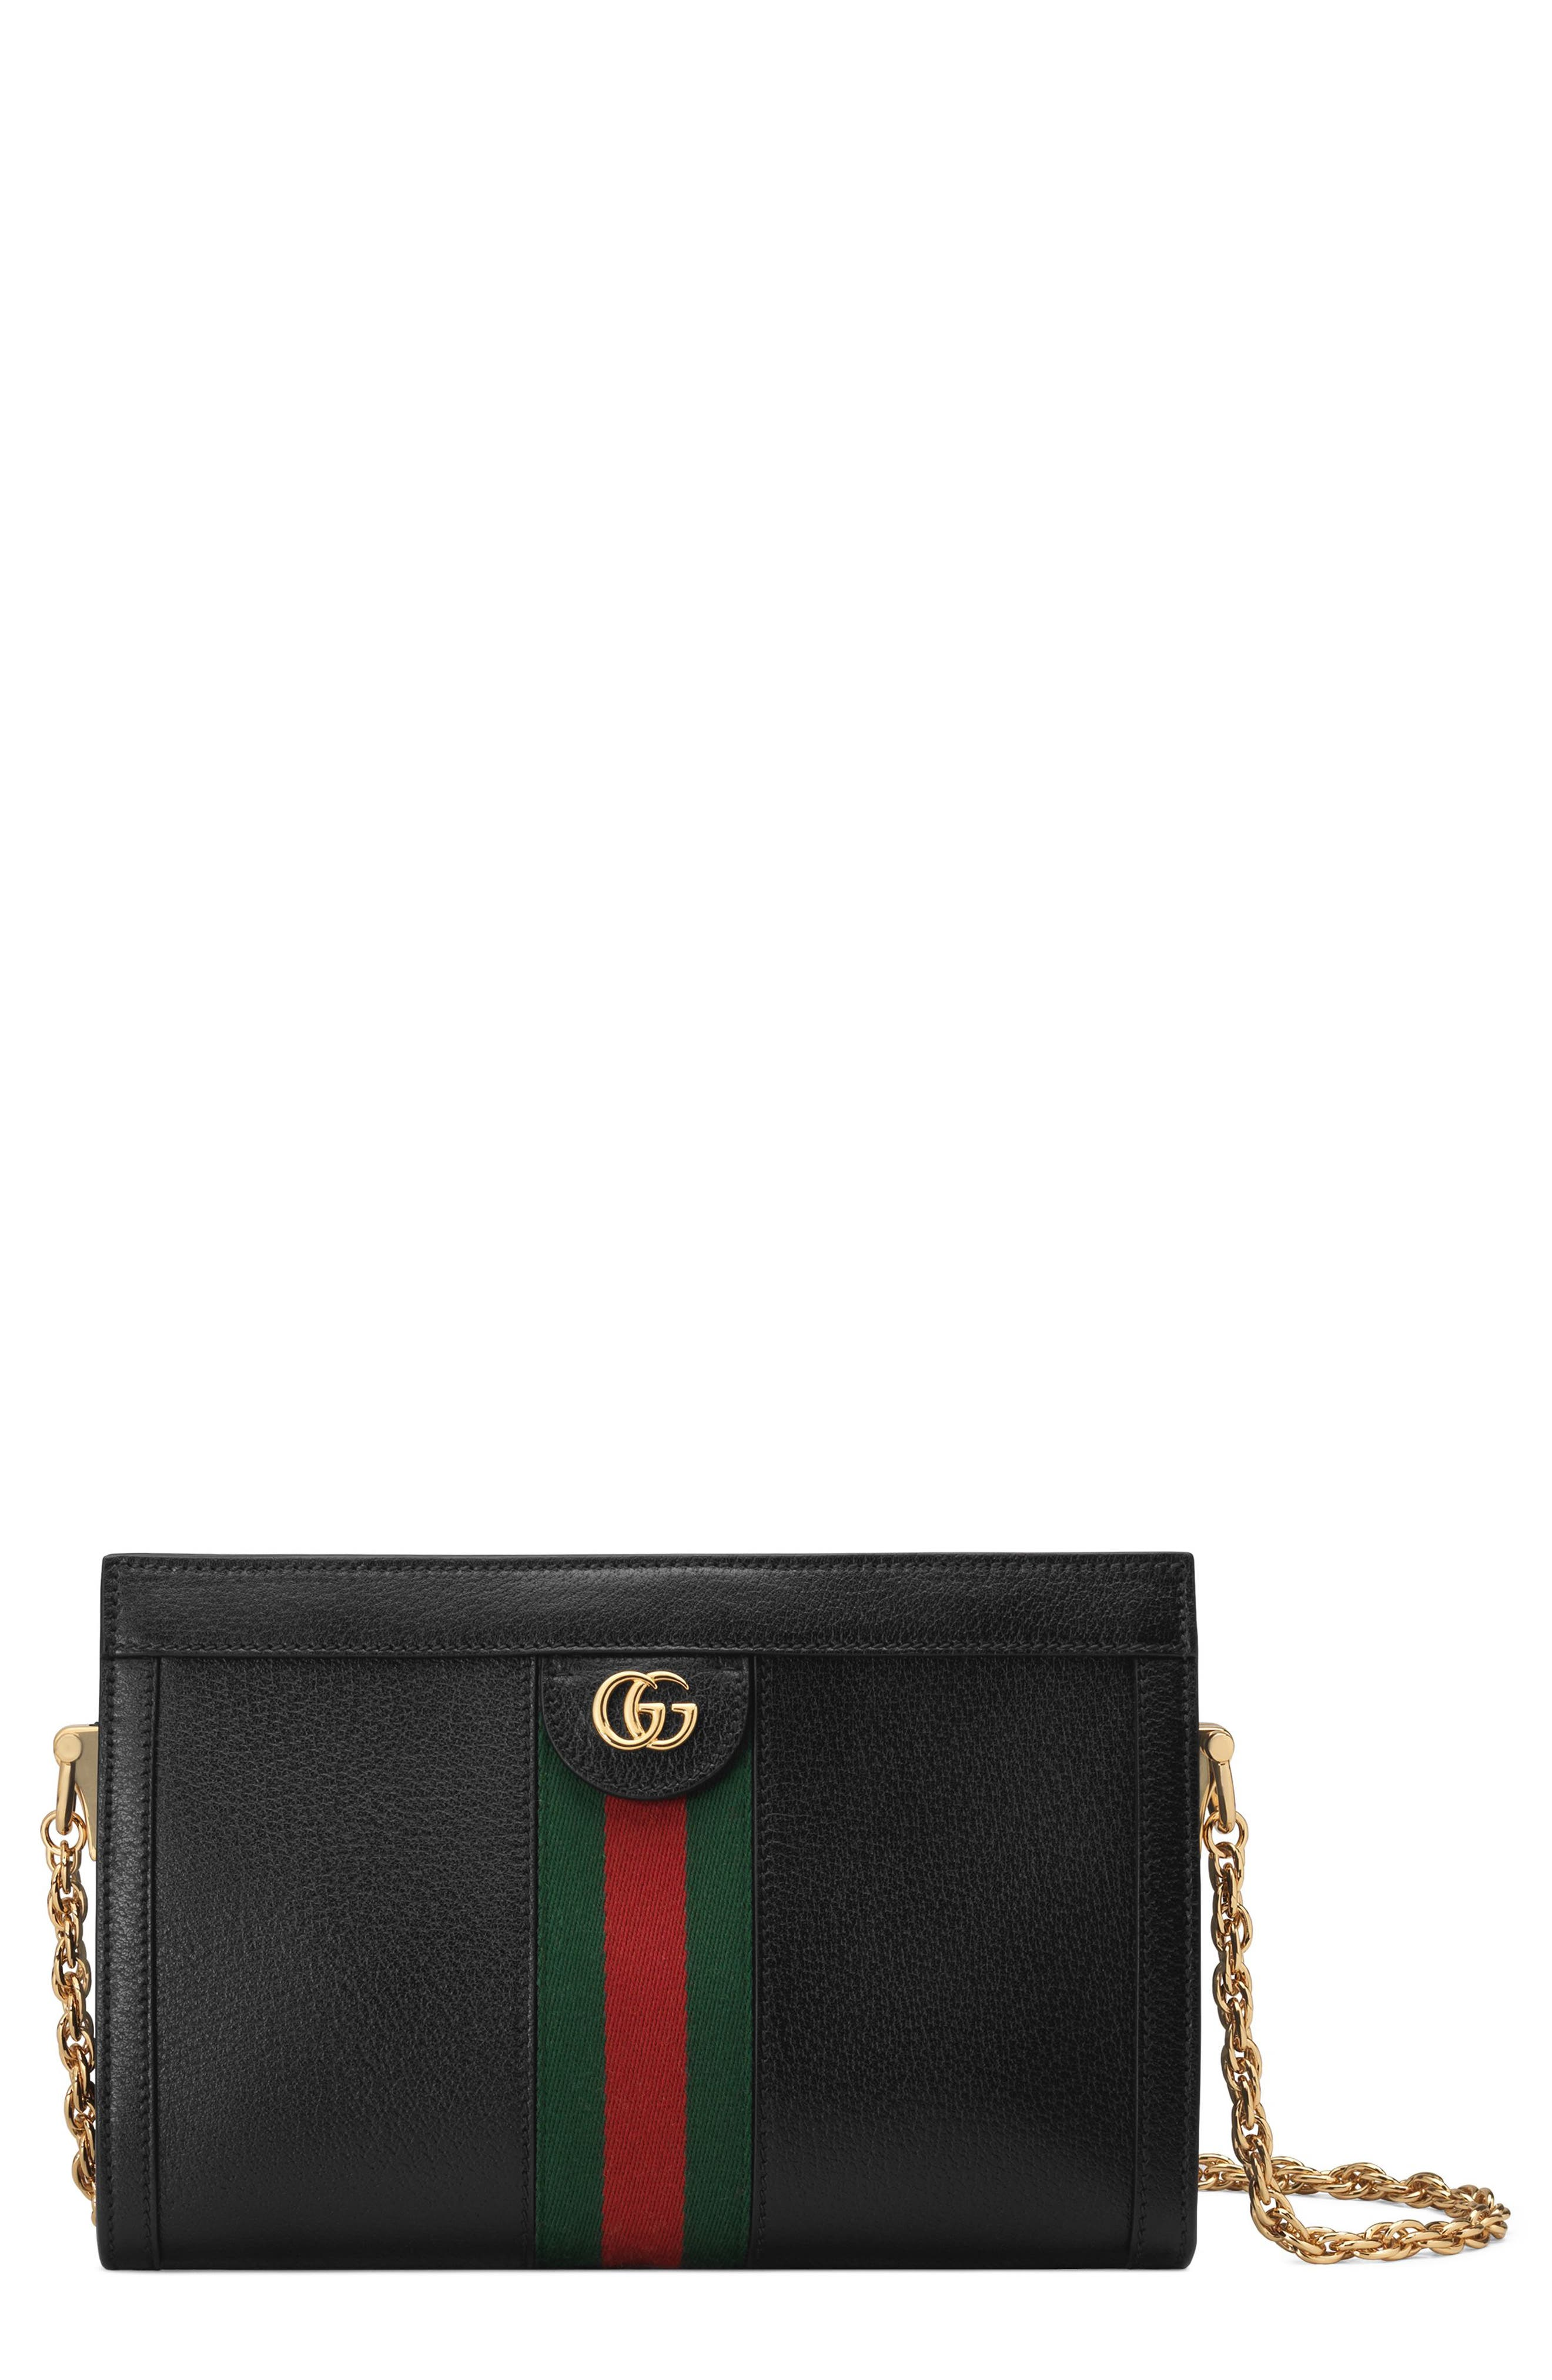 ,                             Small Ophidia Leather Shoulder Bag,                             Main thumbnail 1, color,                             NERO/ VERT RED VERT